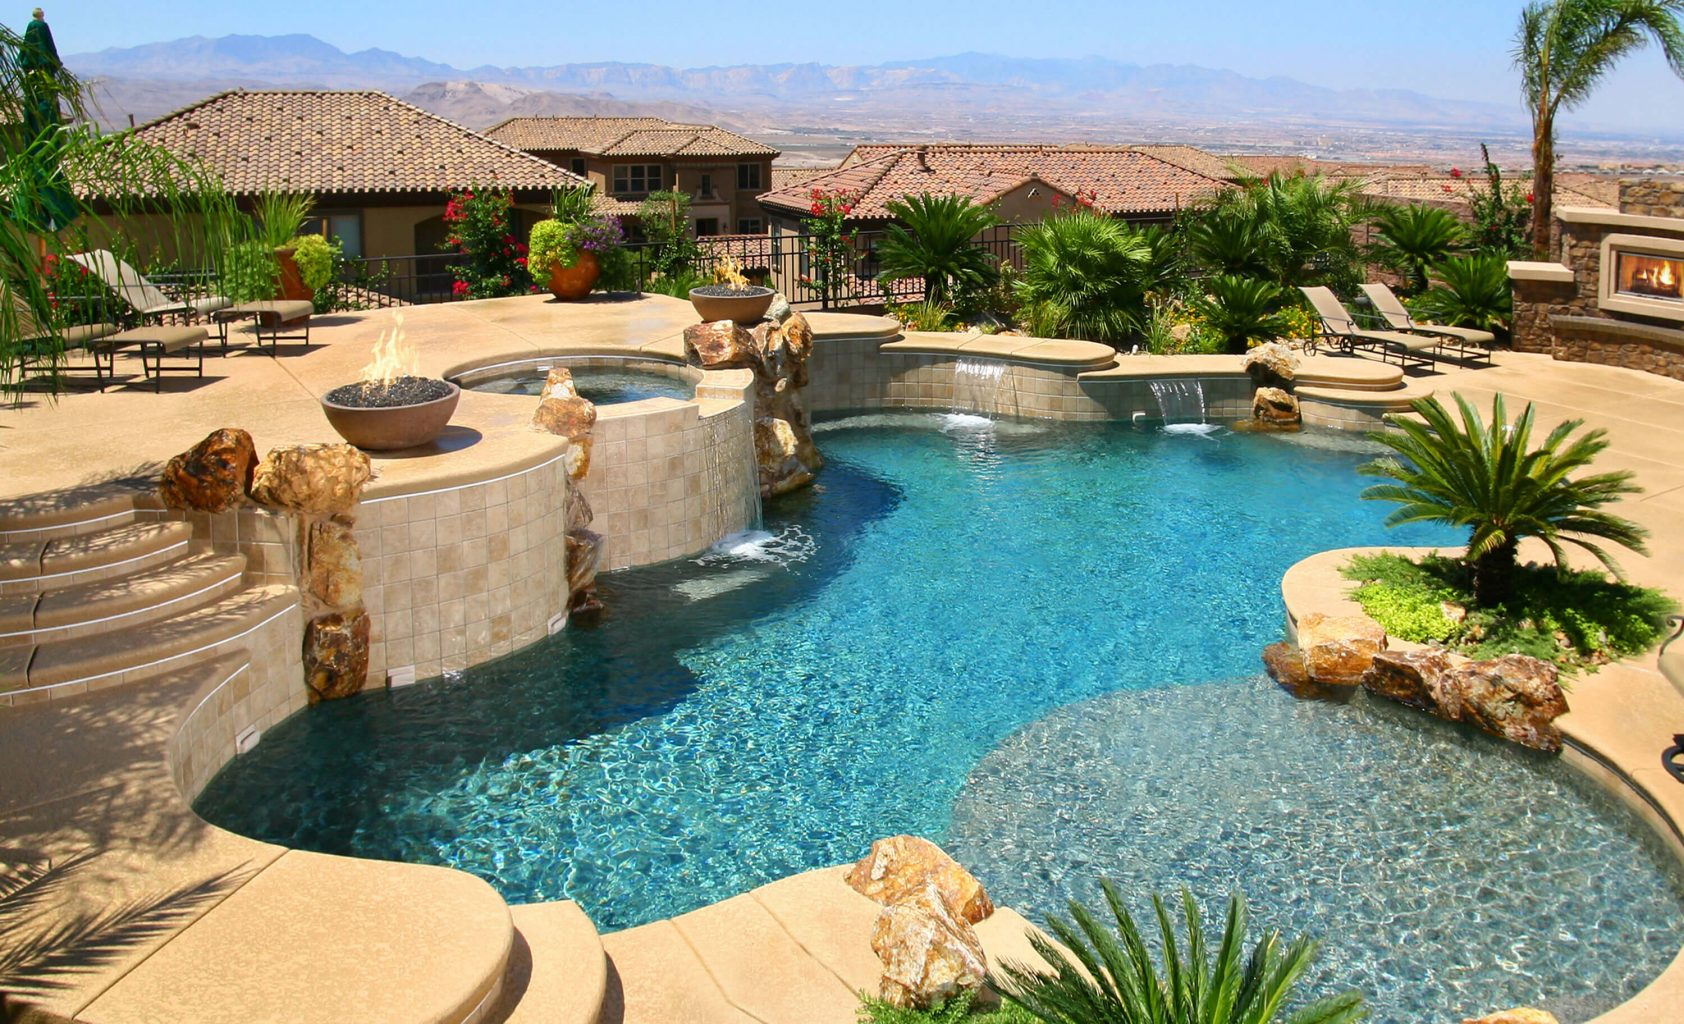 Clarity Pool Service - Eco-Friendly Water Treatment with PuriPool Process Service of Las Vegas, Nevada